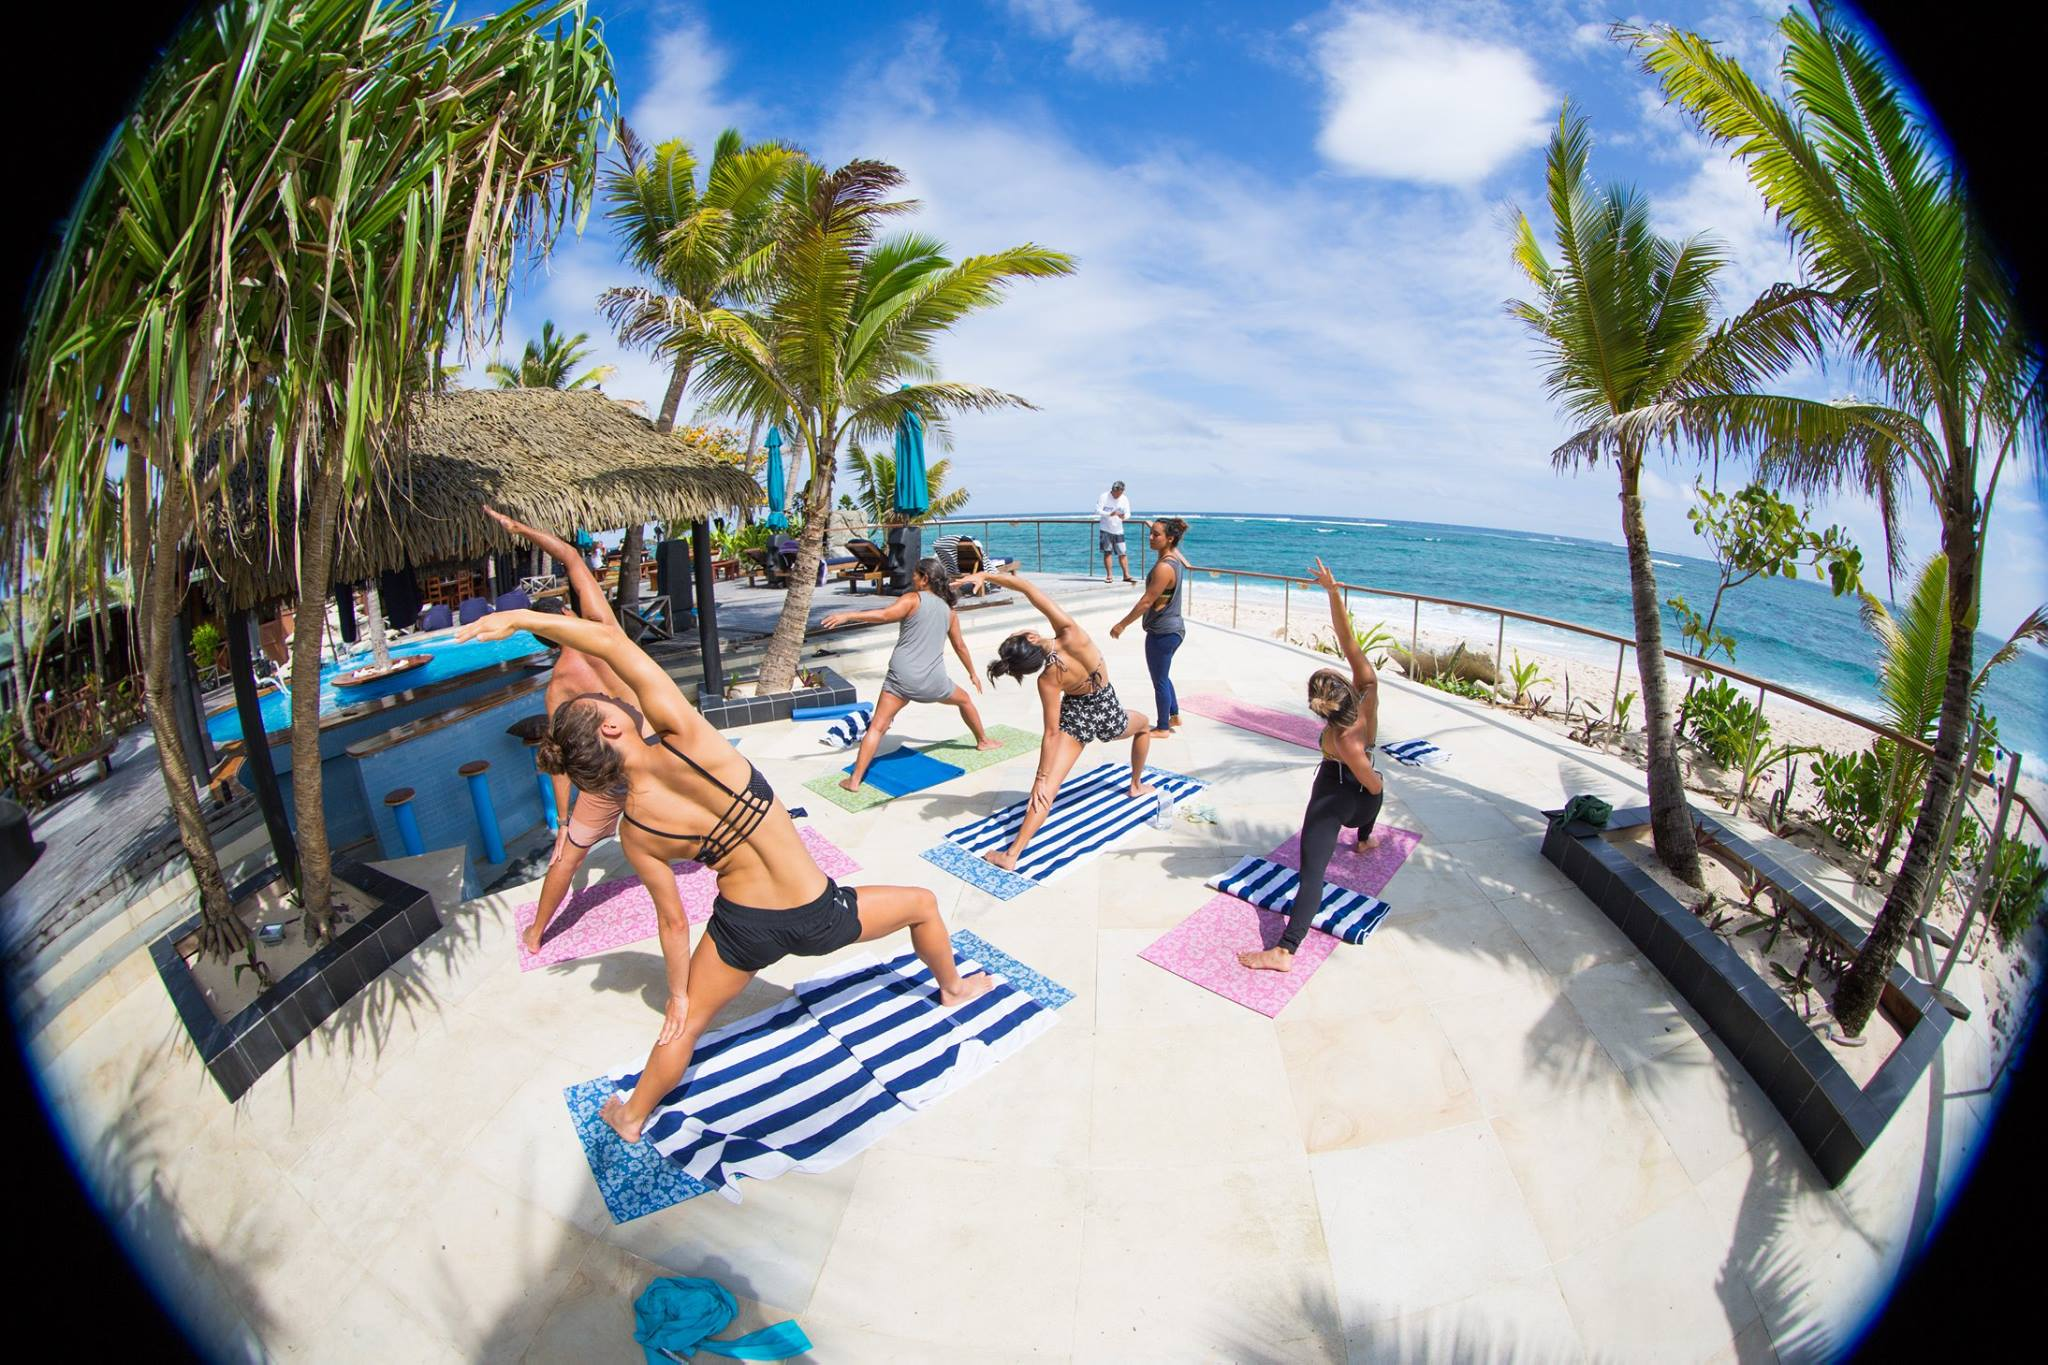 FIJI yoga & surfing - July 29th - August 5th, 2017August 5th - August 12th, 2017Ride the waves on Namotu Island Resort! Daily yoga, snorkel in crystal blue waters, chow down on delicious food, party on Kava night and of course surf the best reef breaks on this planet!